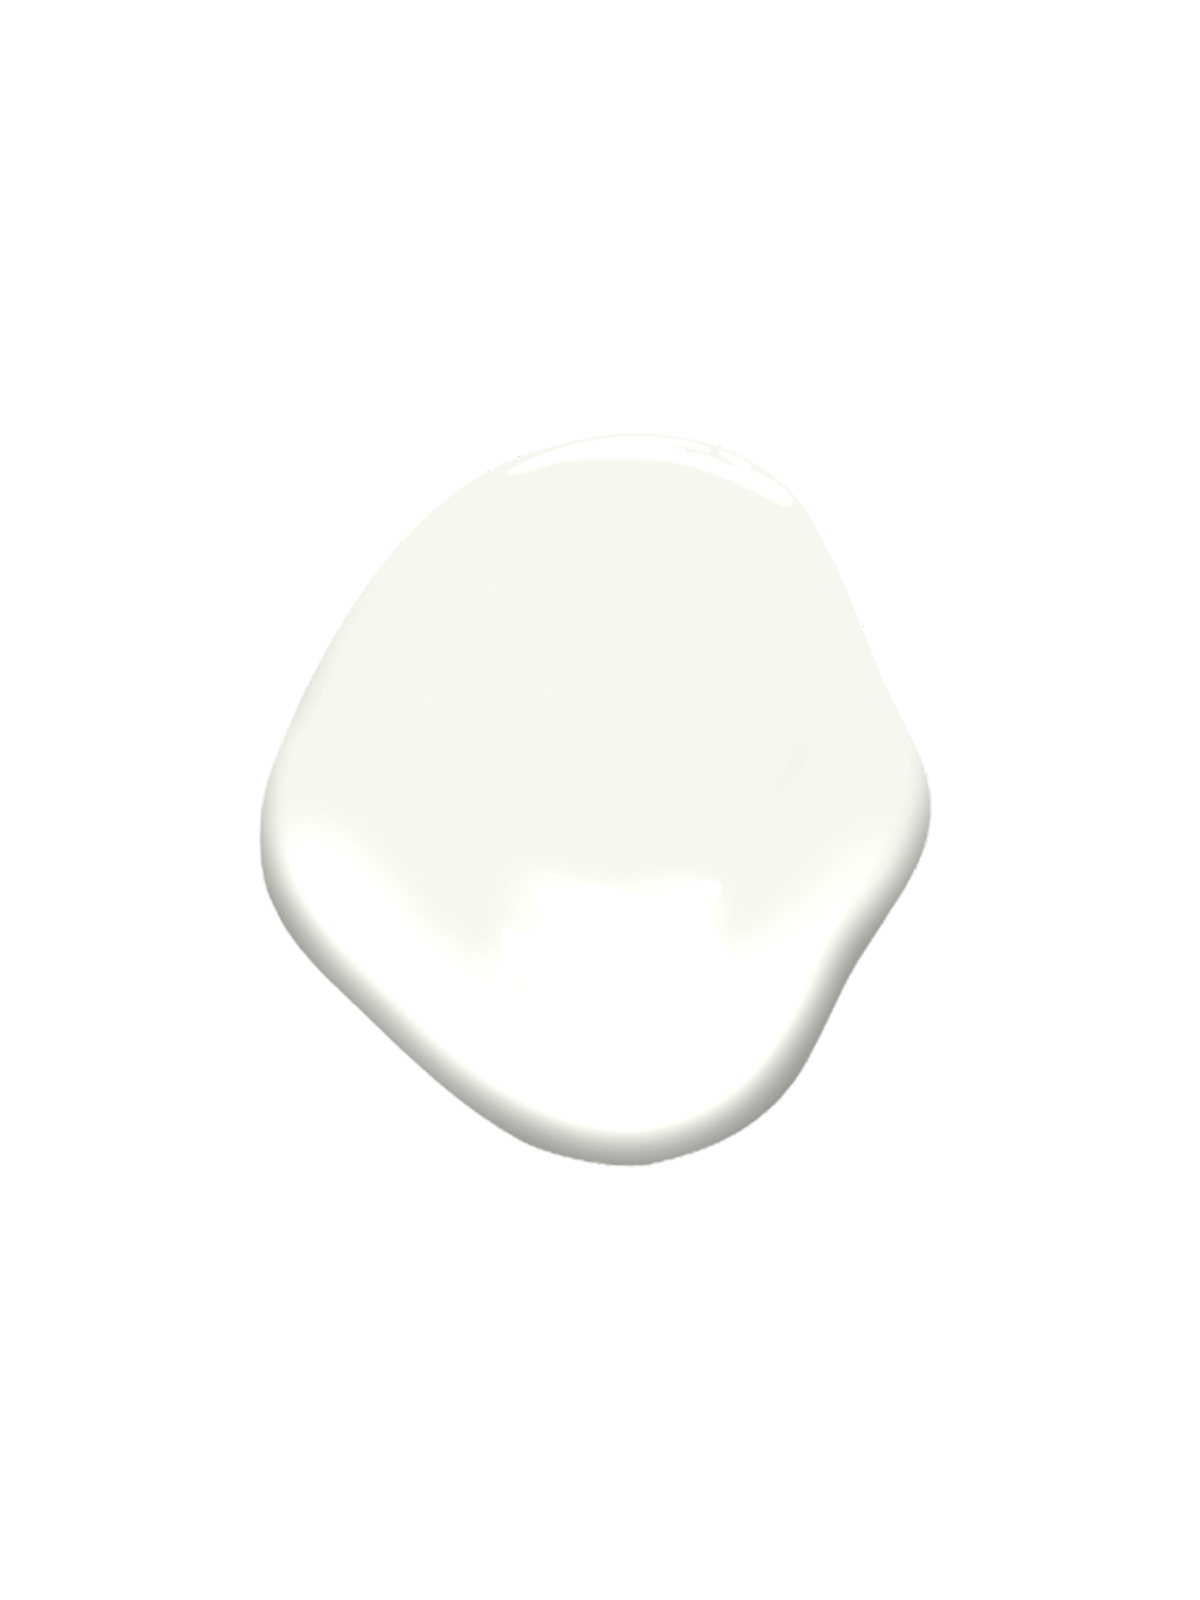 Simply White by Benjamin Moore